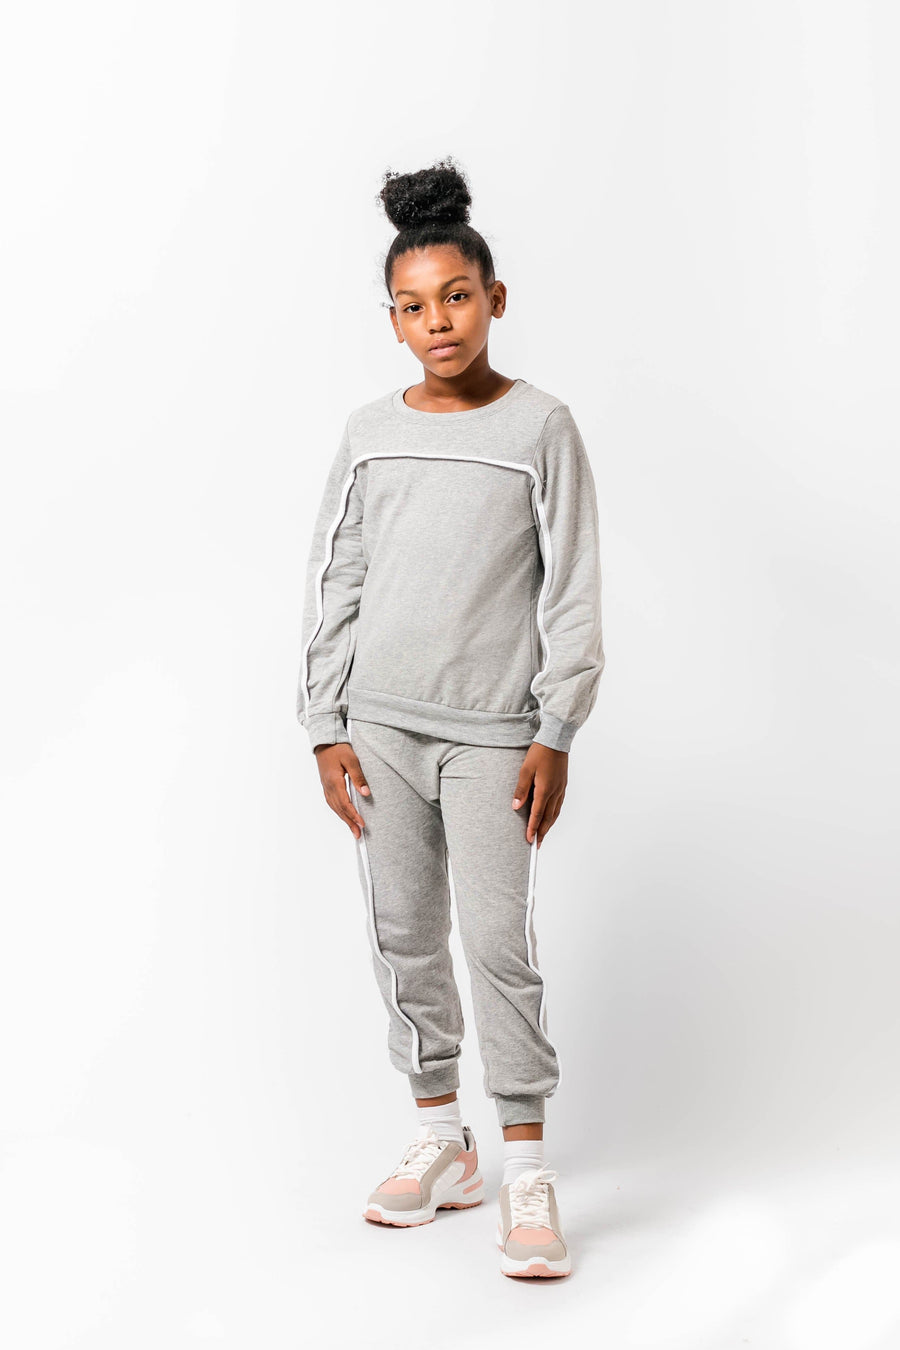 Penelope Grey Slim Fit Tracksuit With White Piping From Little Attitude